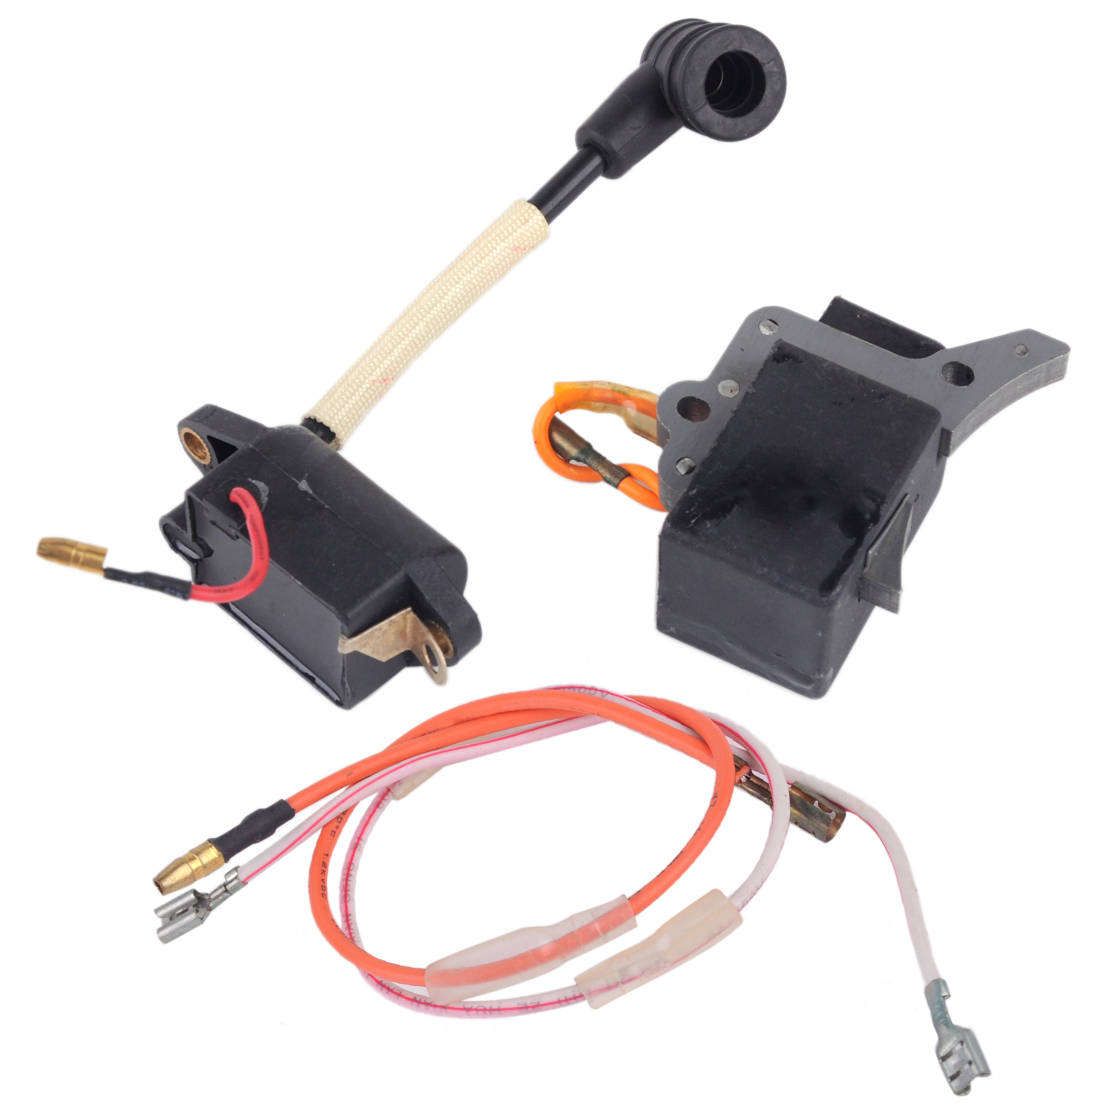 LETAOSK Chainsaw Ignition Coil Module Fit for Shindaiwa 488 # A411000460 ReplacementAccessories